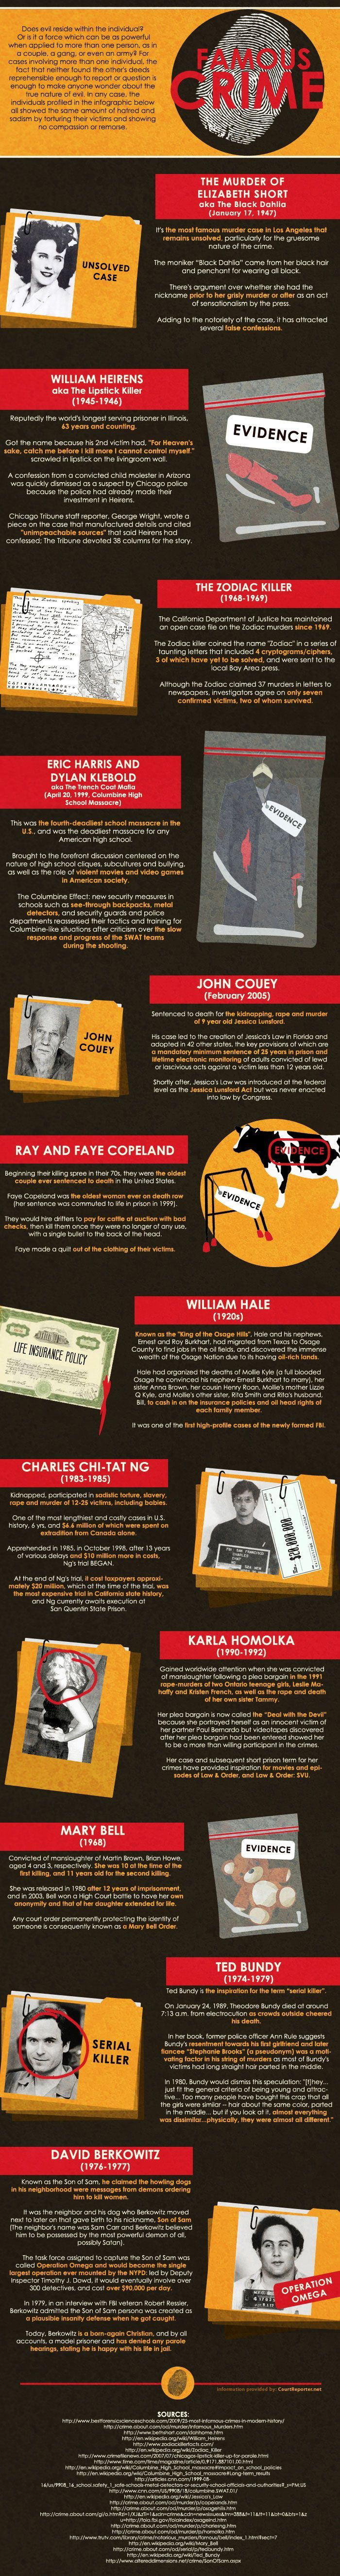 The informative yet morbid Famous Crime graphic provides some fascinating facts on some of the most famous and high-profile murder cases in the histor